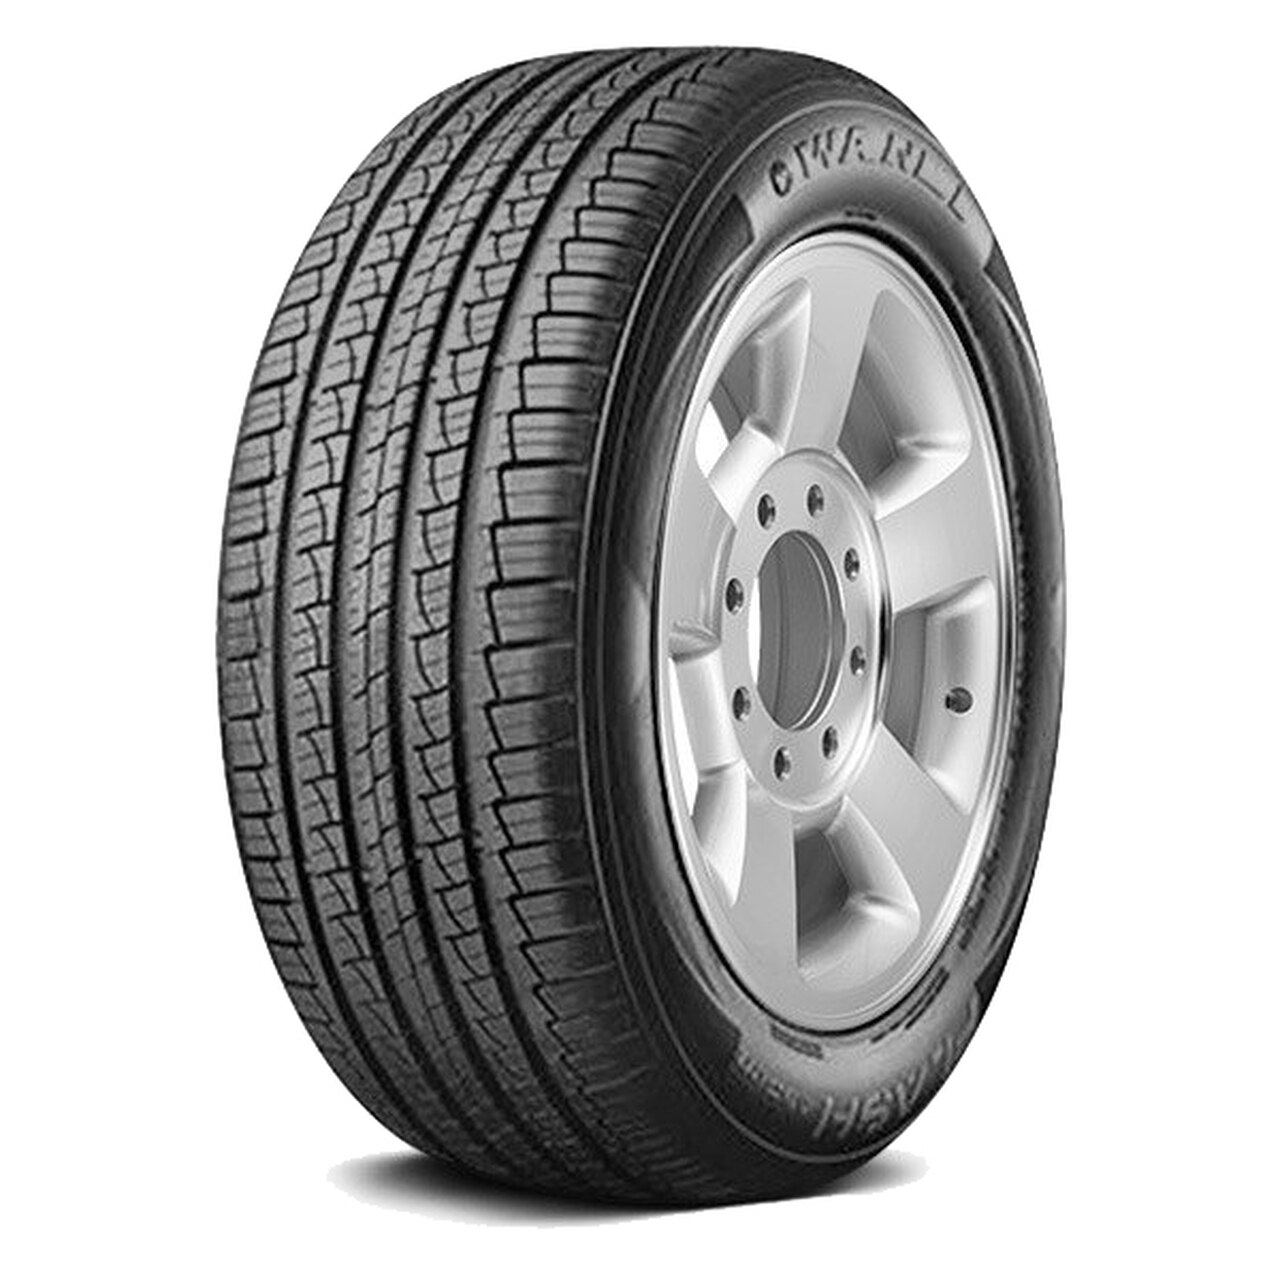 WANLI 225/65R17 102H FLASH AS028.